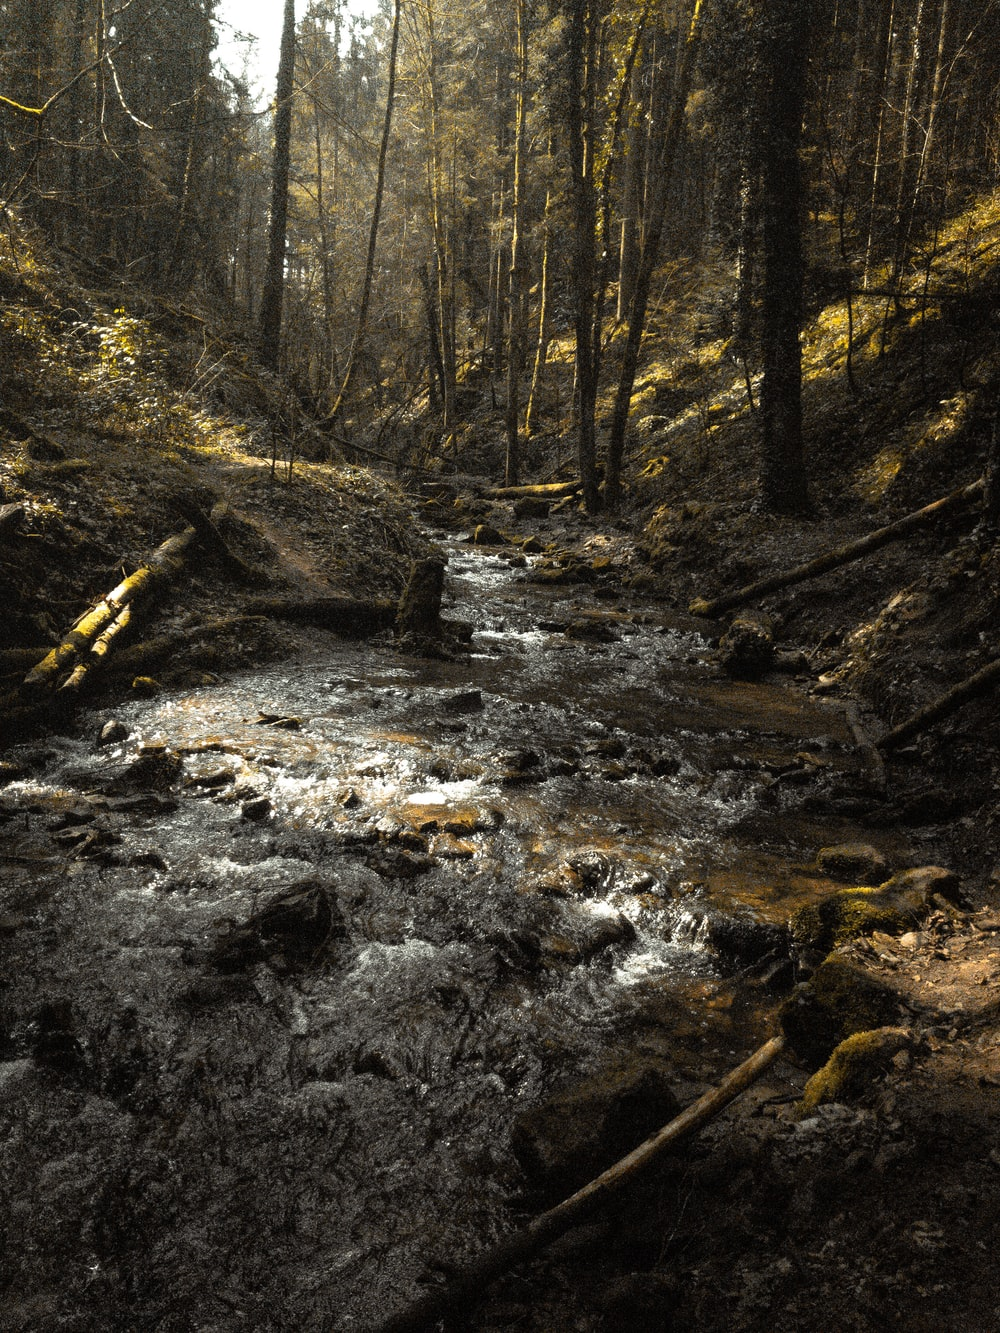 river in the middle of forest